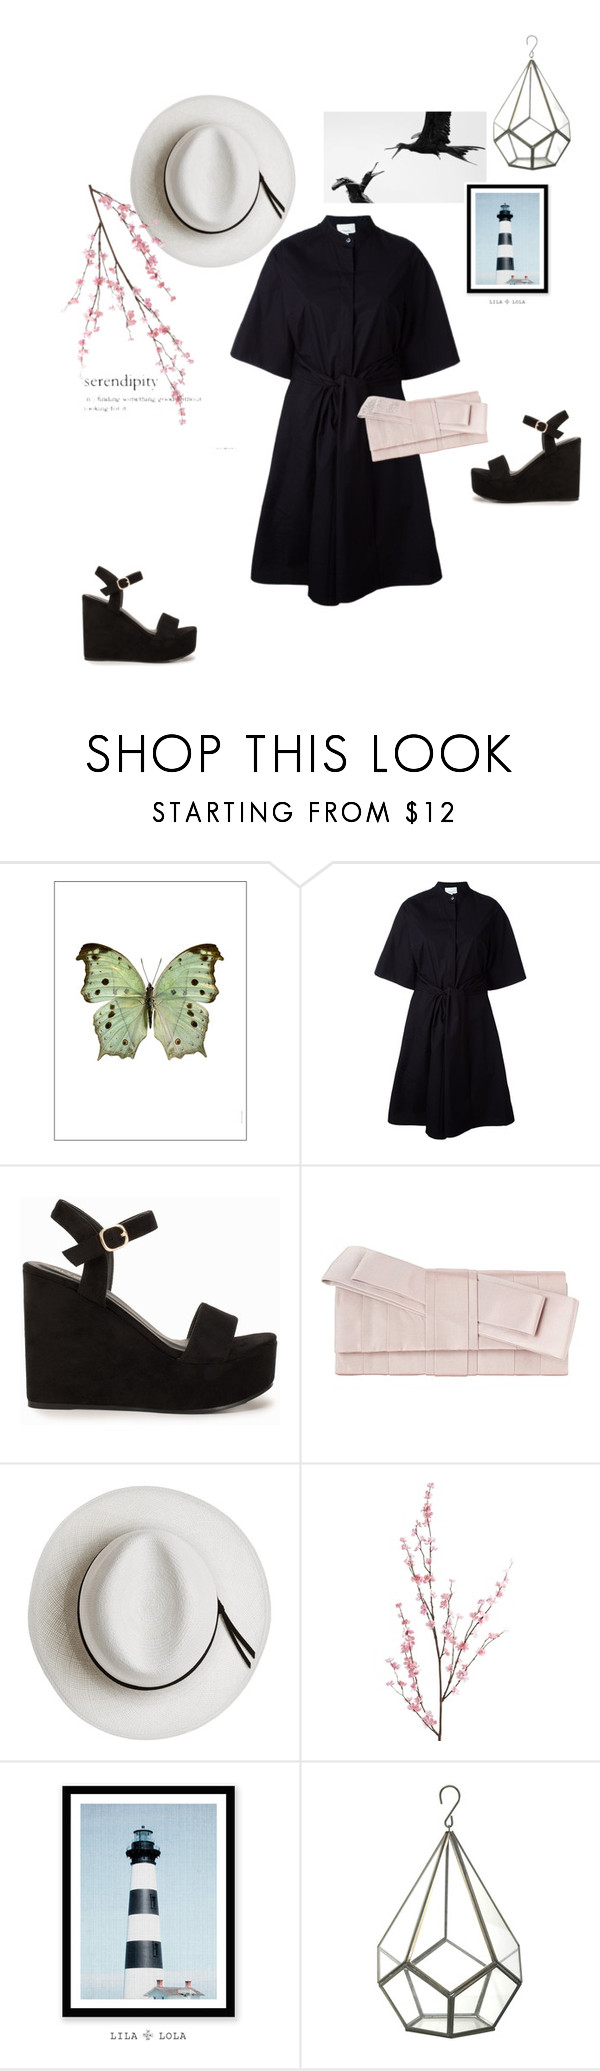 """""""Untitled #31"""" by ghmahi ❤ liked on Polyvore featuring Liljebergs, 3.1 Phillip Lim, Nly Shoes, John Lewis, Calypso Private Label and Pier 1 Imports"""